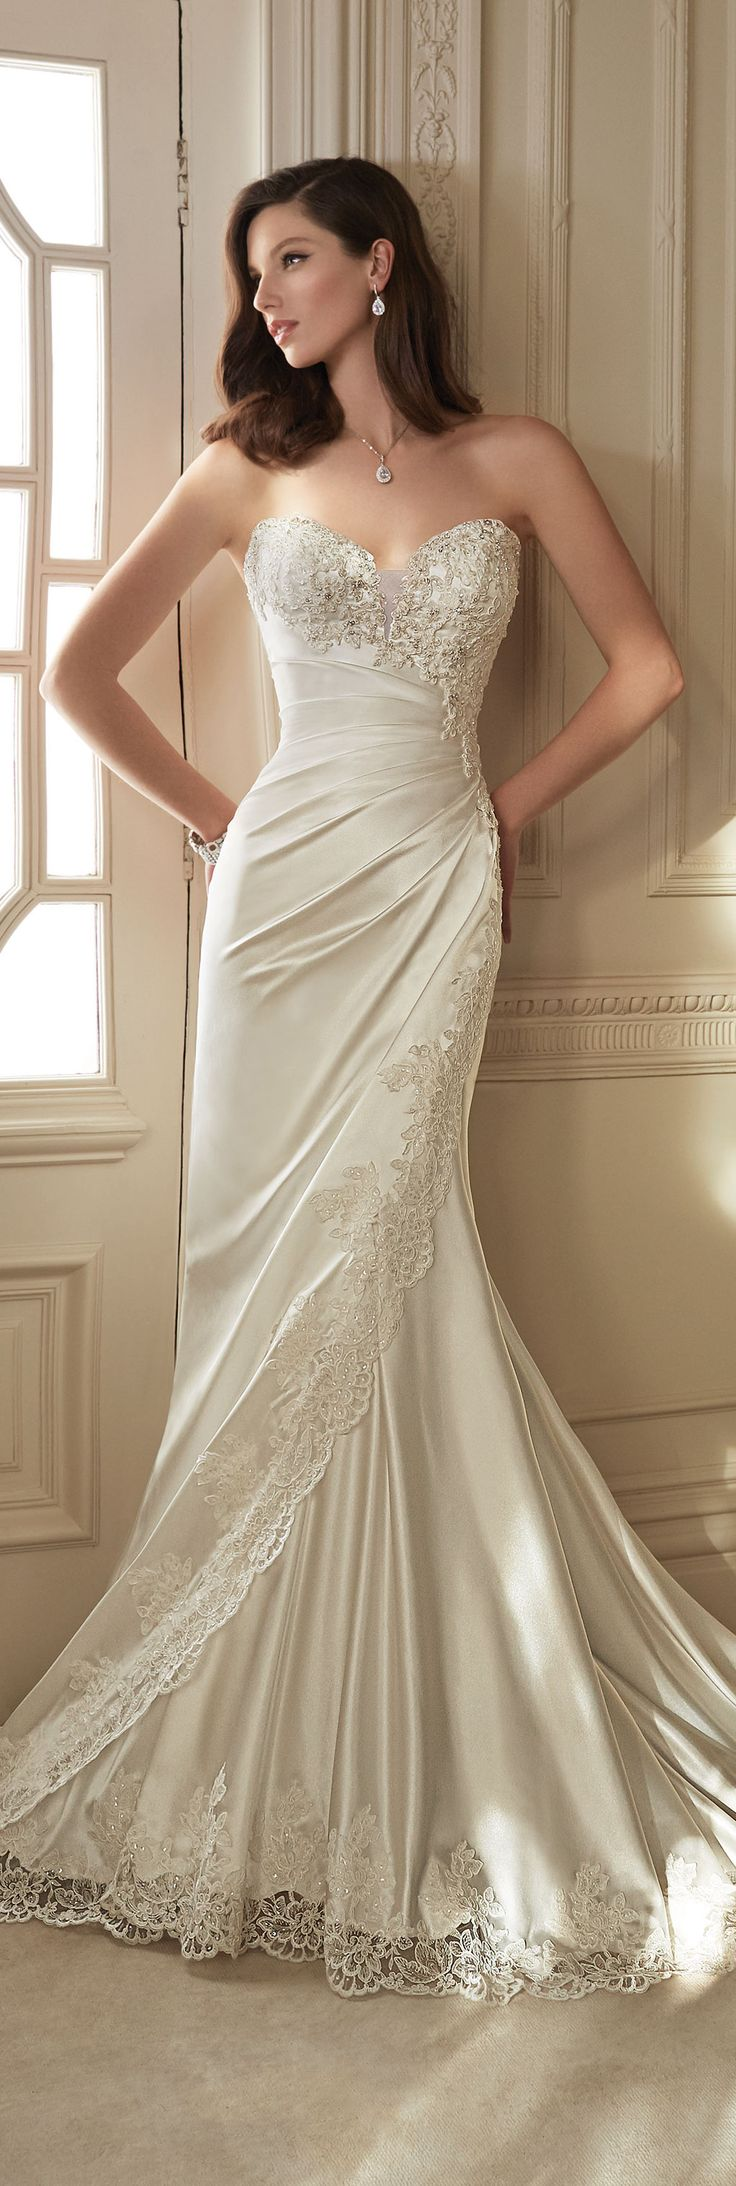 Wedding-Dresses-1190